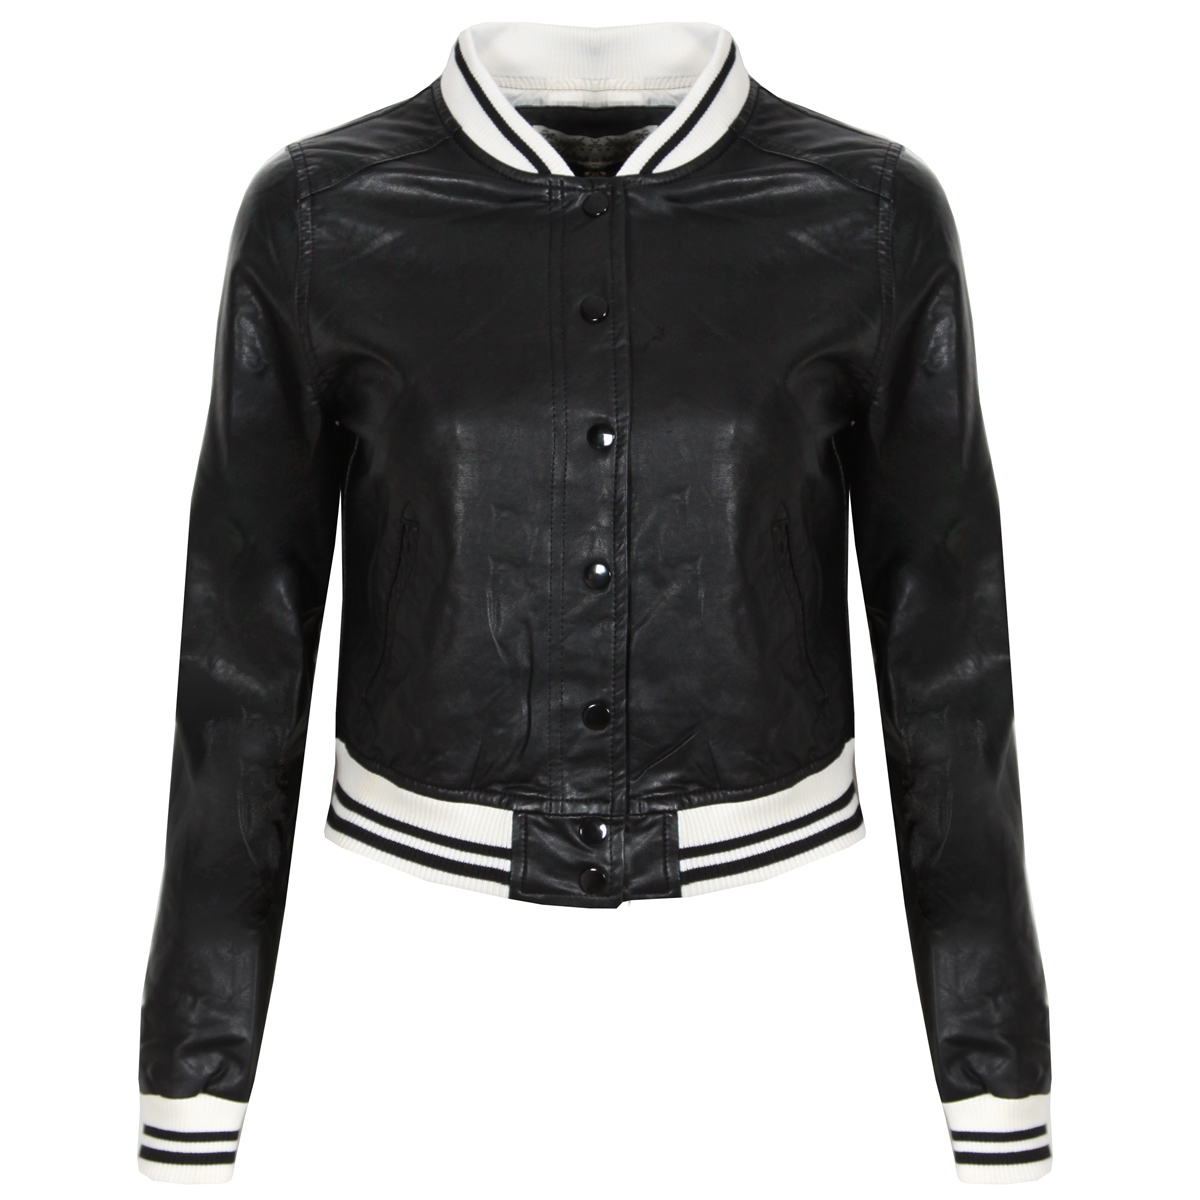 Black varsity jacket women